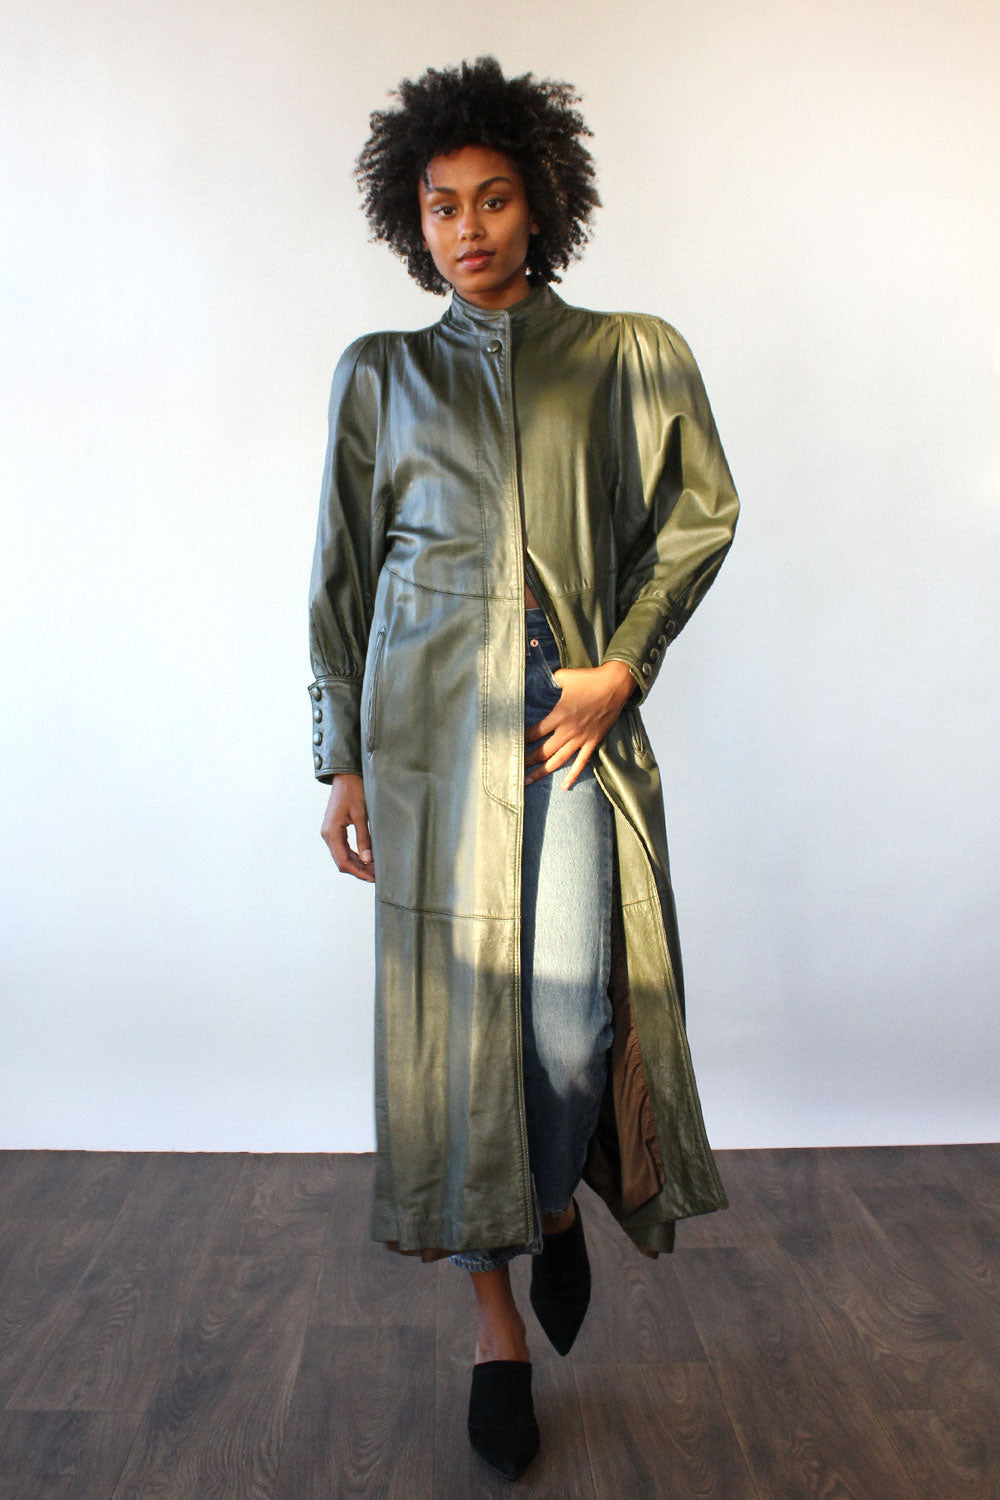 Evan Arpelli Ivy Leather Drama Coat M